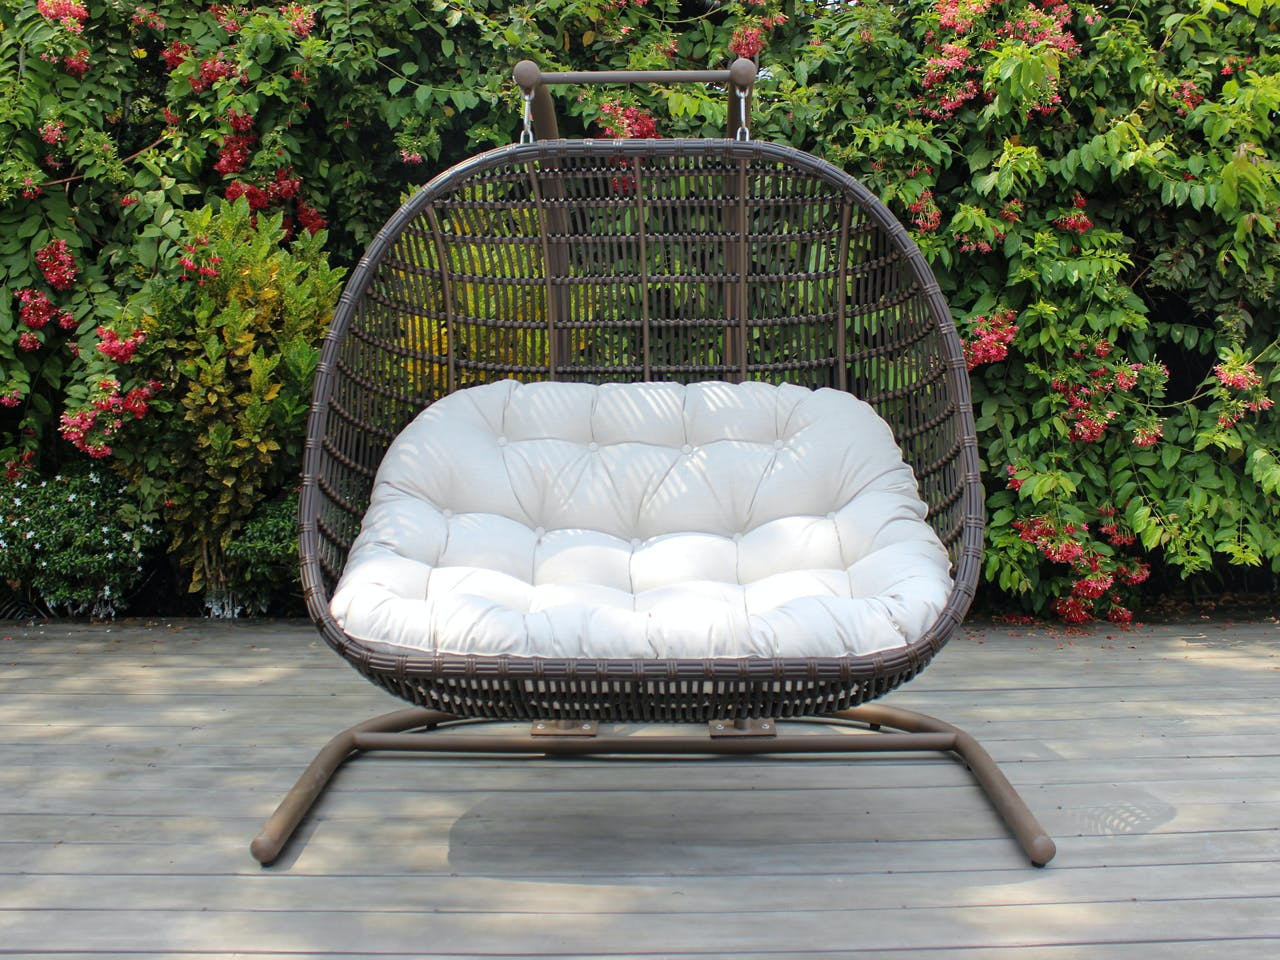 Picture of: Living Room Chocolate Outdoor Wicker With Cast Pumice Cushion Hanging Double Chair Swing 7813746